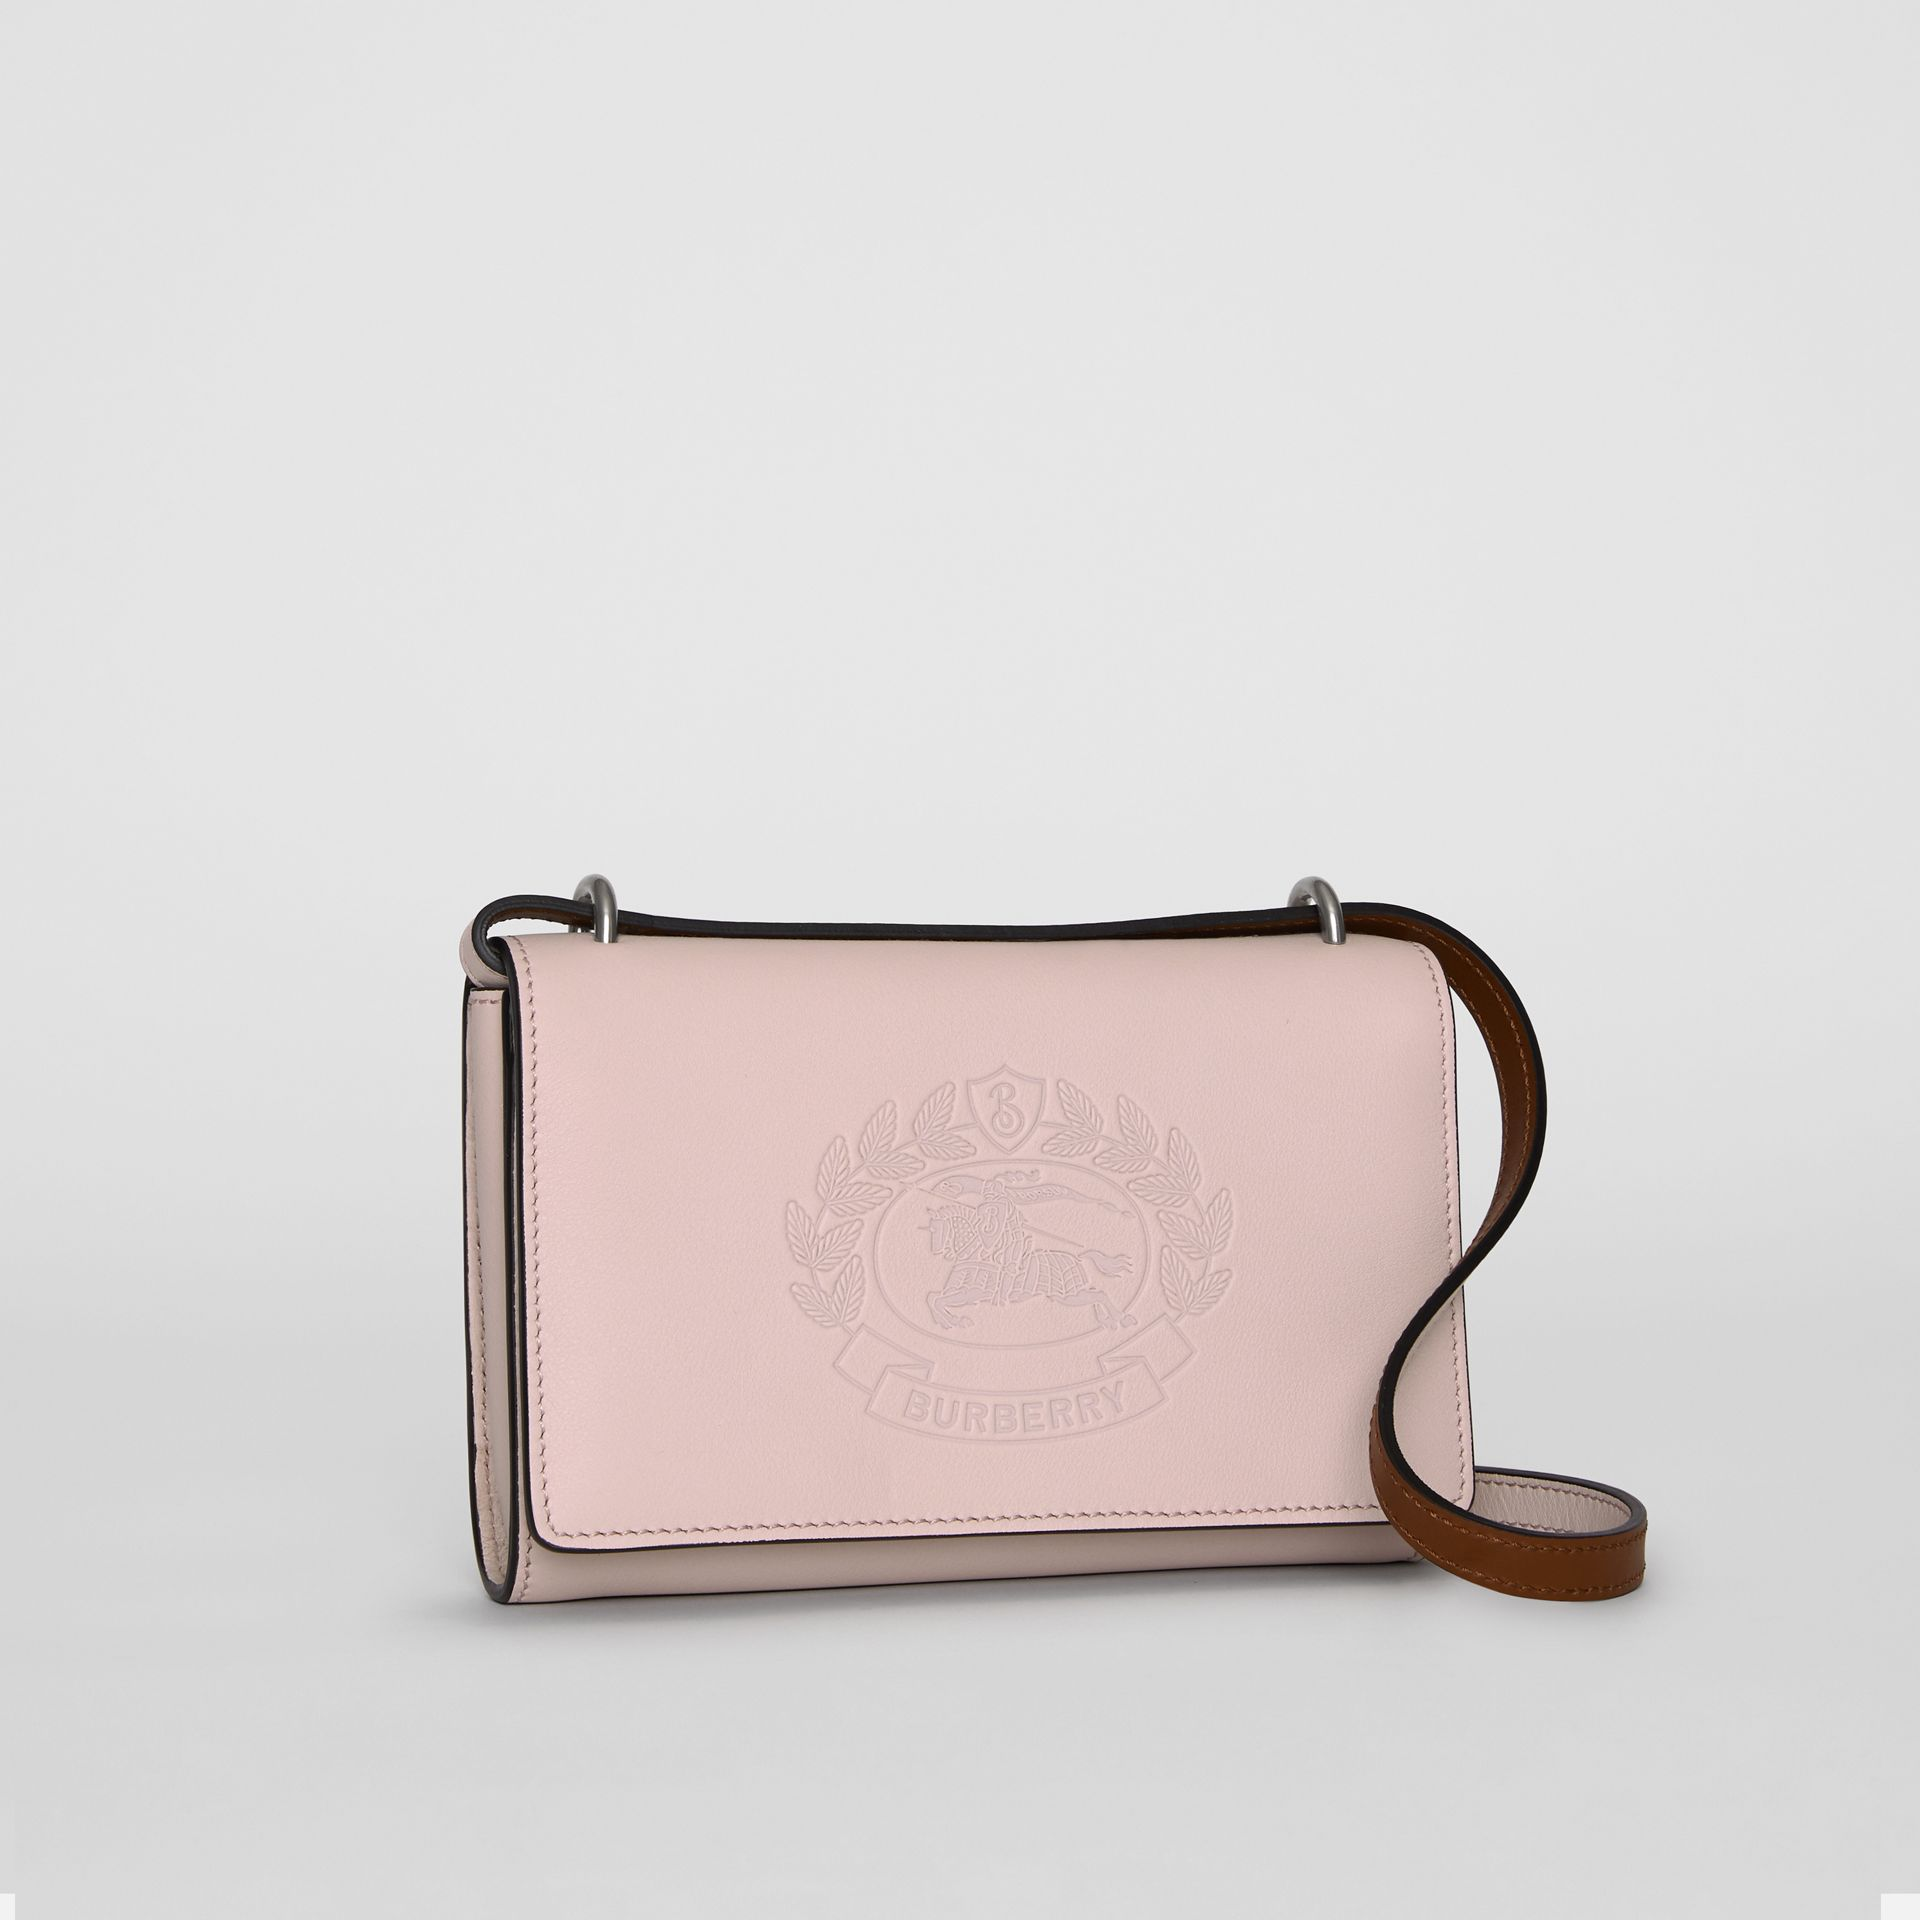 Embossed Crest Leather Wallet with Detachable Strap in Chalk Pink - Women | Burberry United Kingdom - gallery image 6